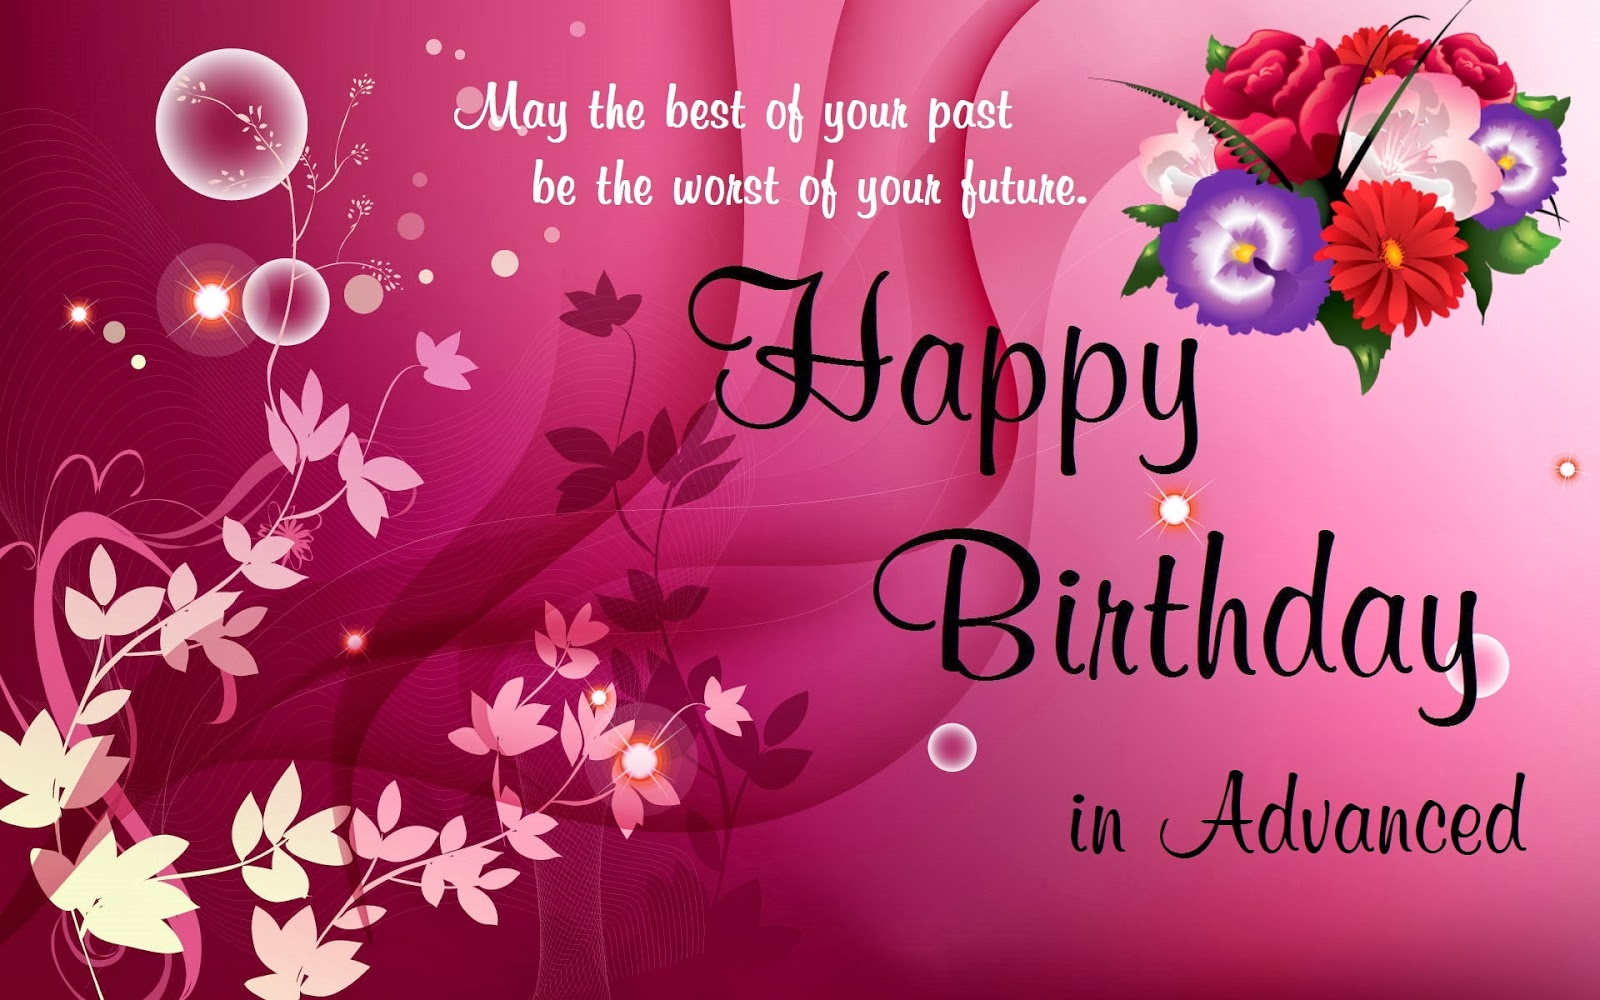 Happy Birthday Areta Powerful Inspirational Encouraging Messages